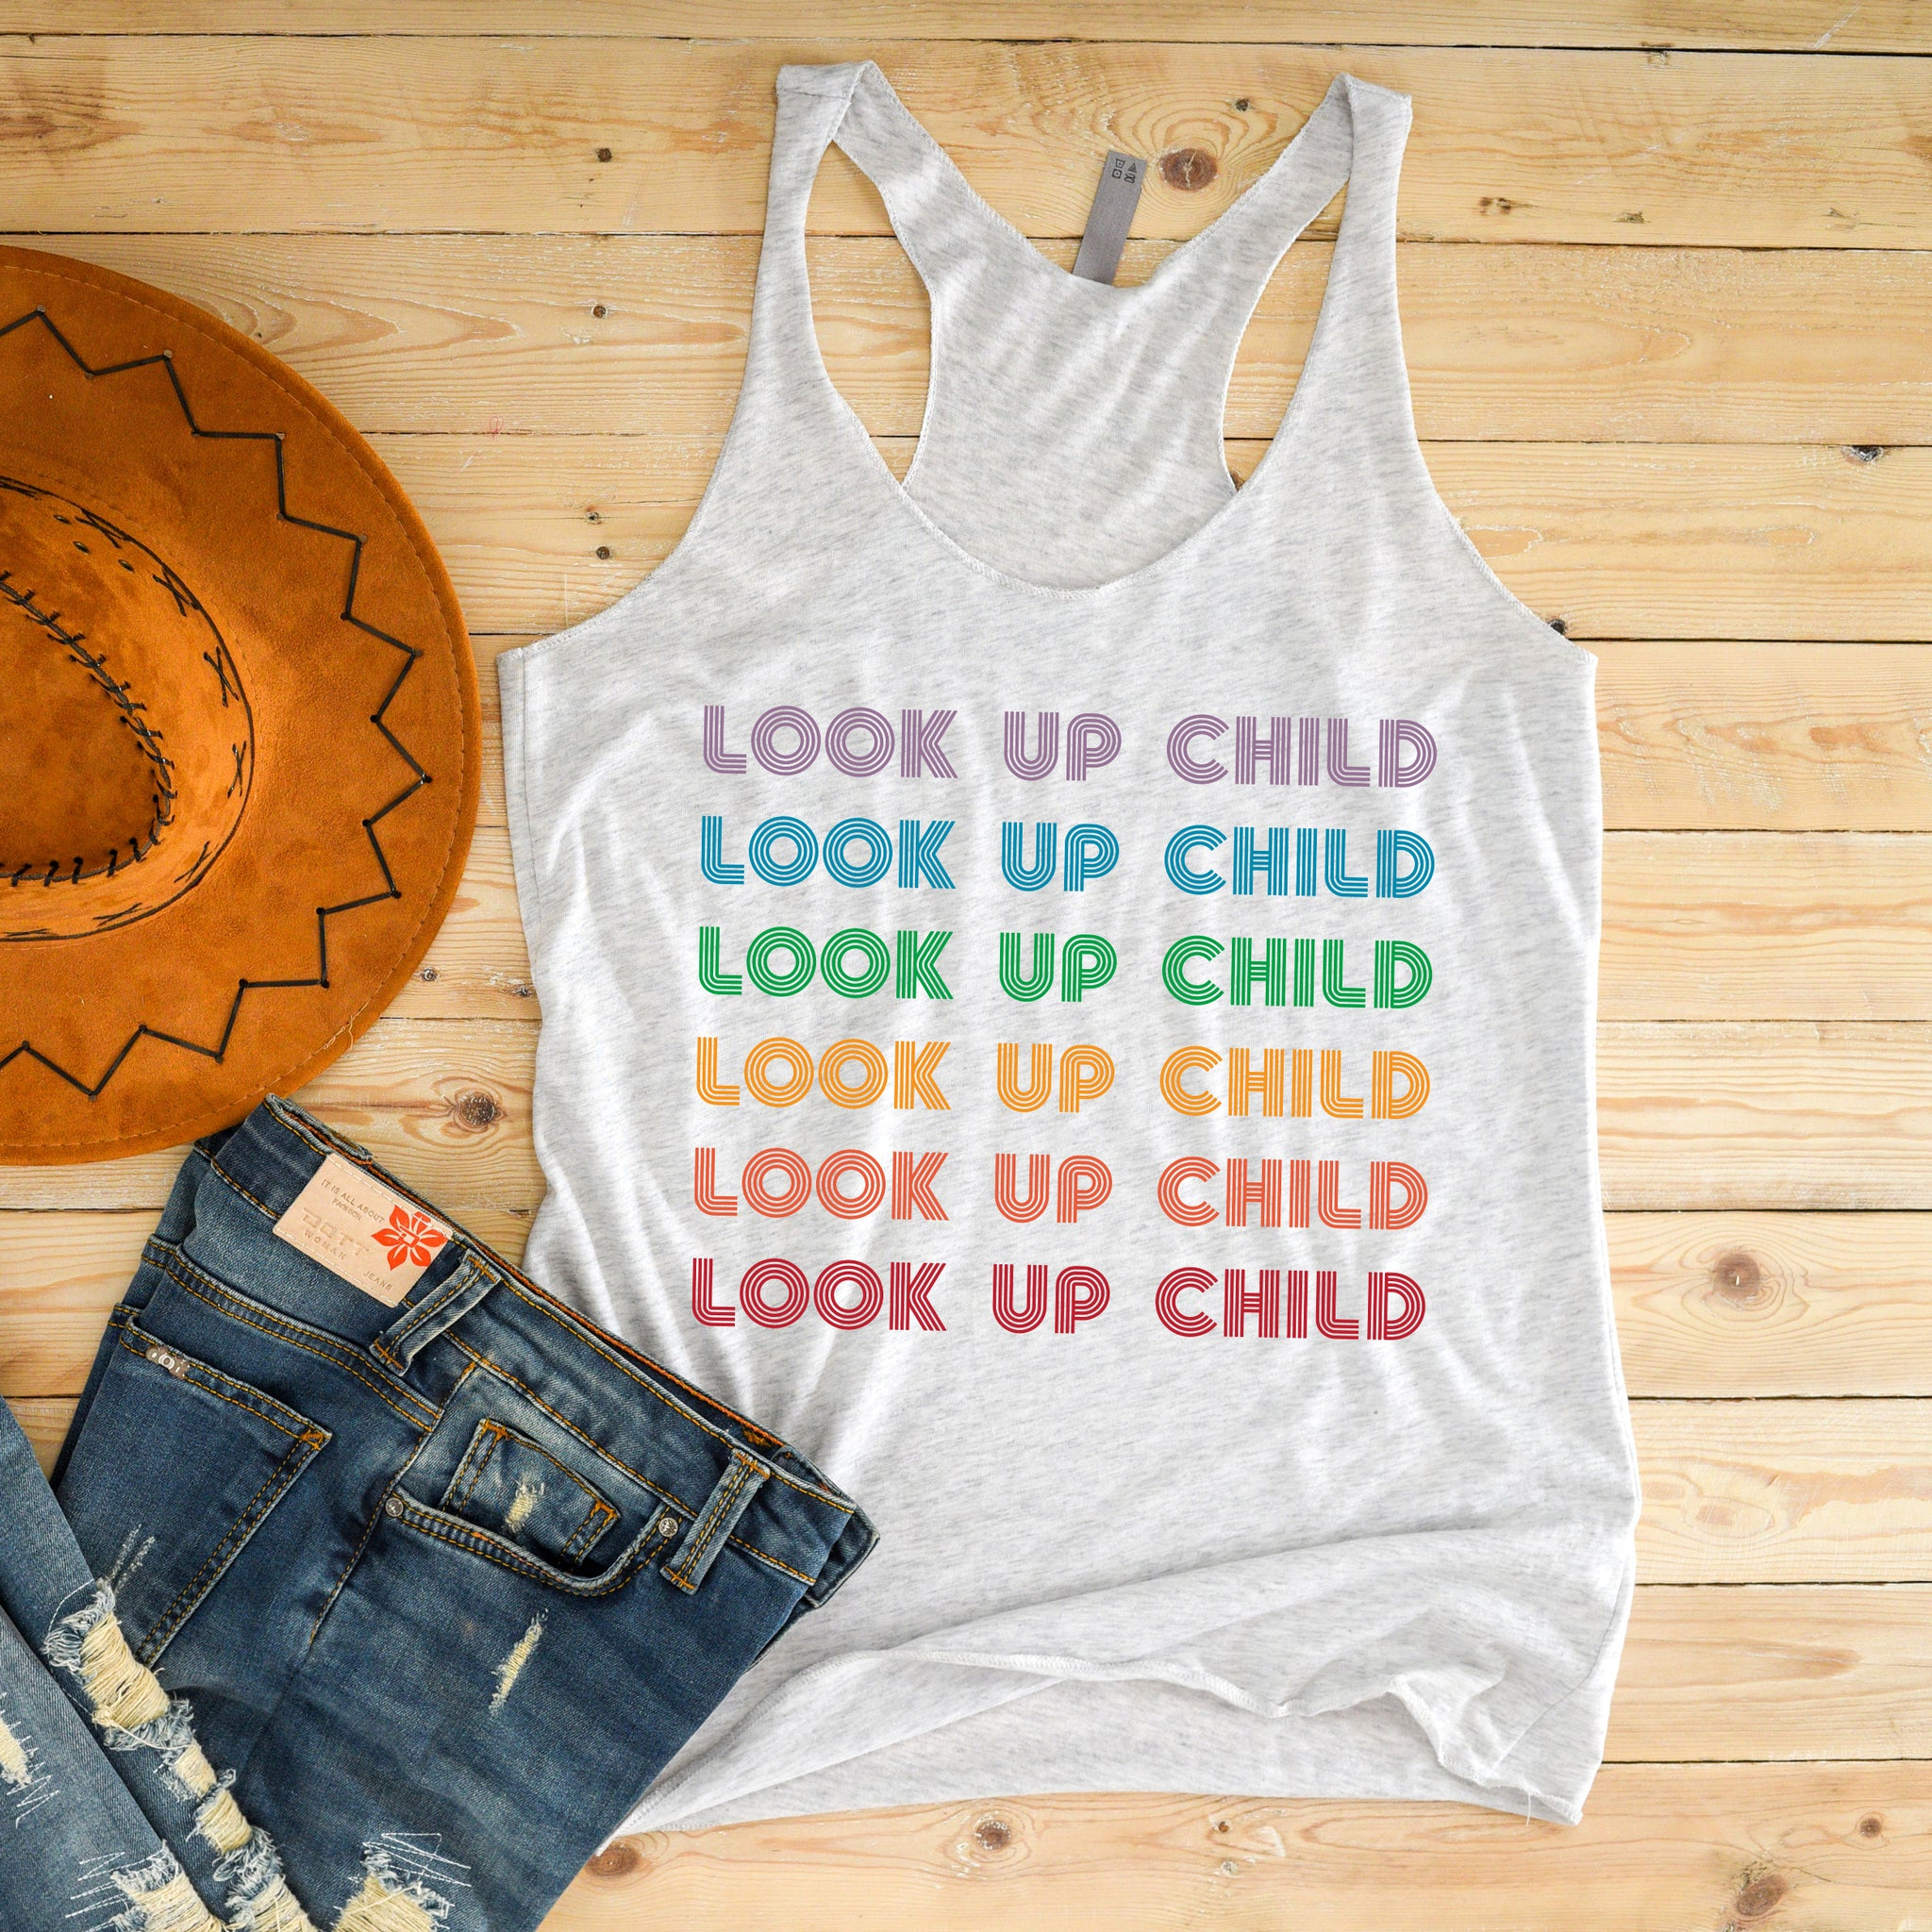 Look Up Child Racerback Tank Top - Bella Faith - Christian Shirts for Women - Women's Faith Based Apparel - Christian Clothing for Women - Christian Jewelry and Gifts for Women - Trendy Christian Tees